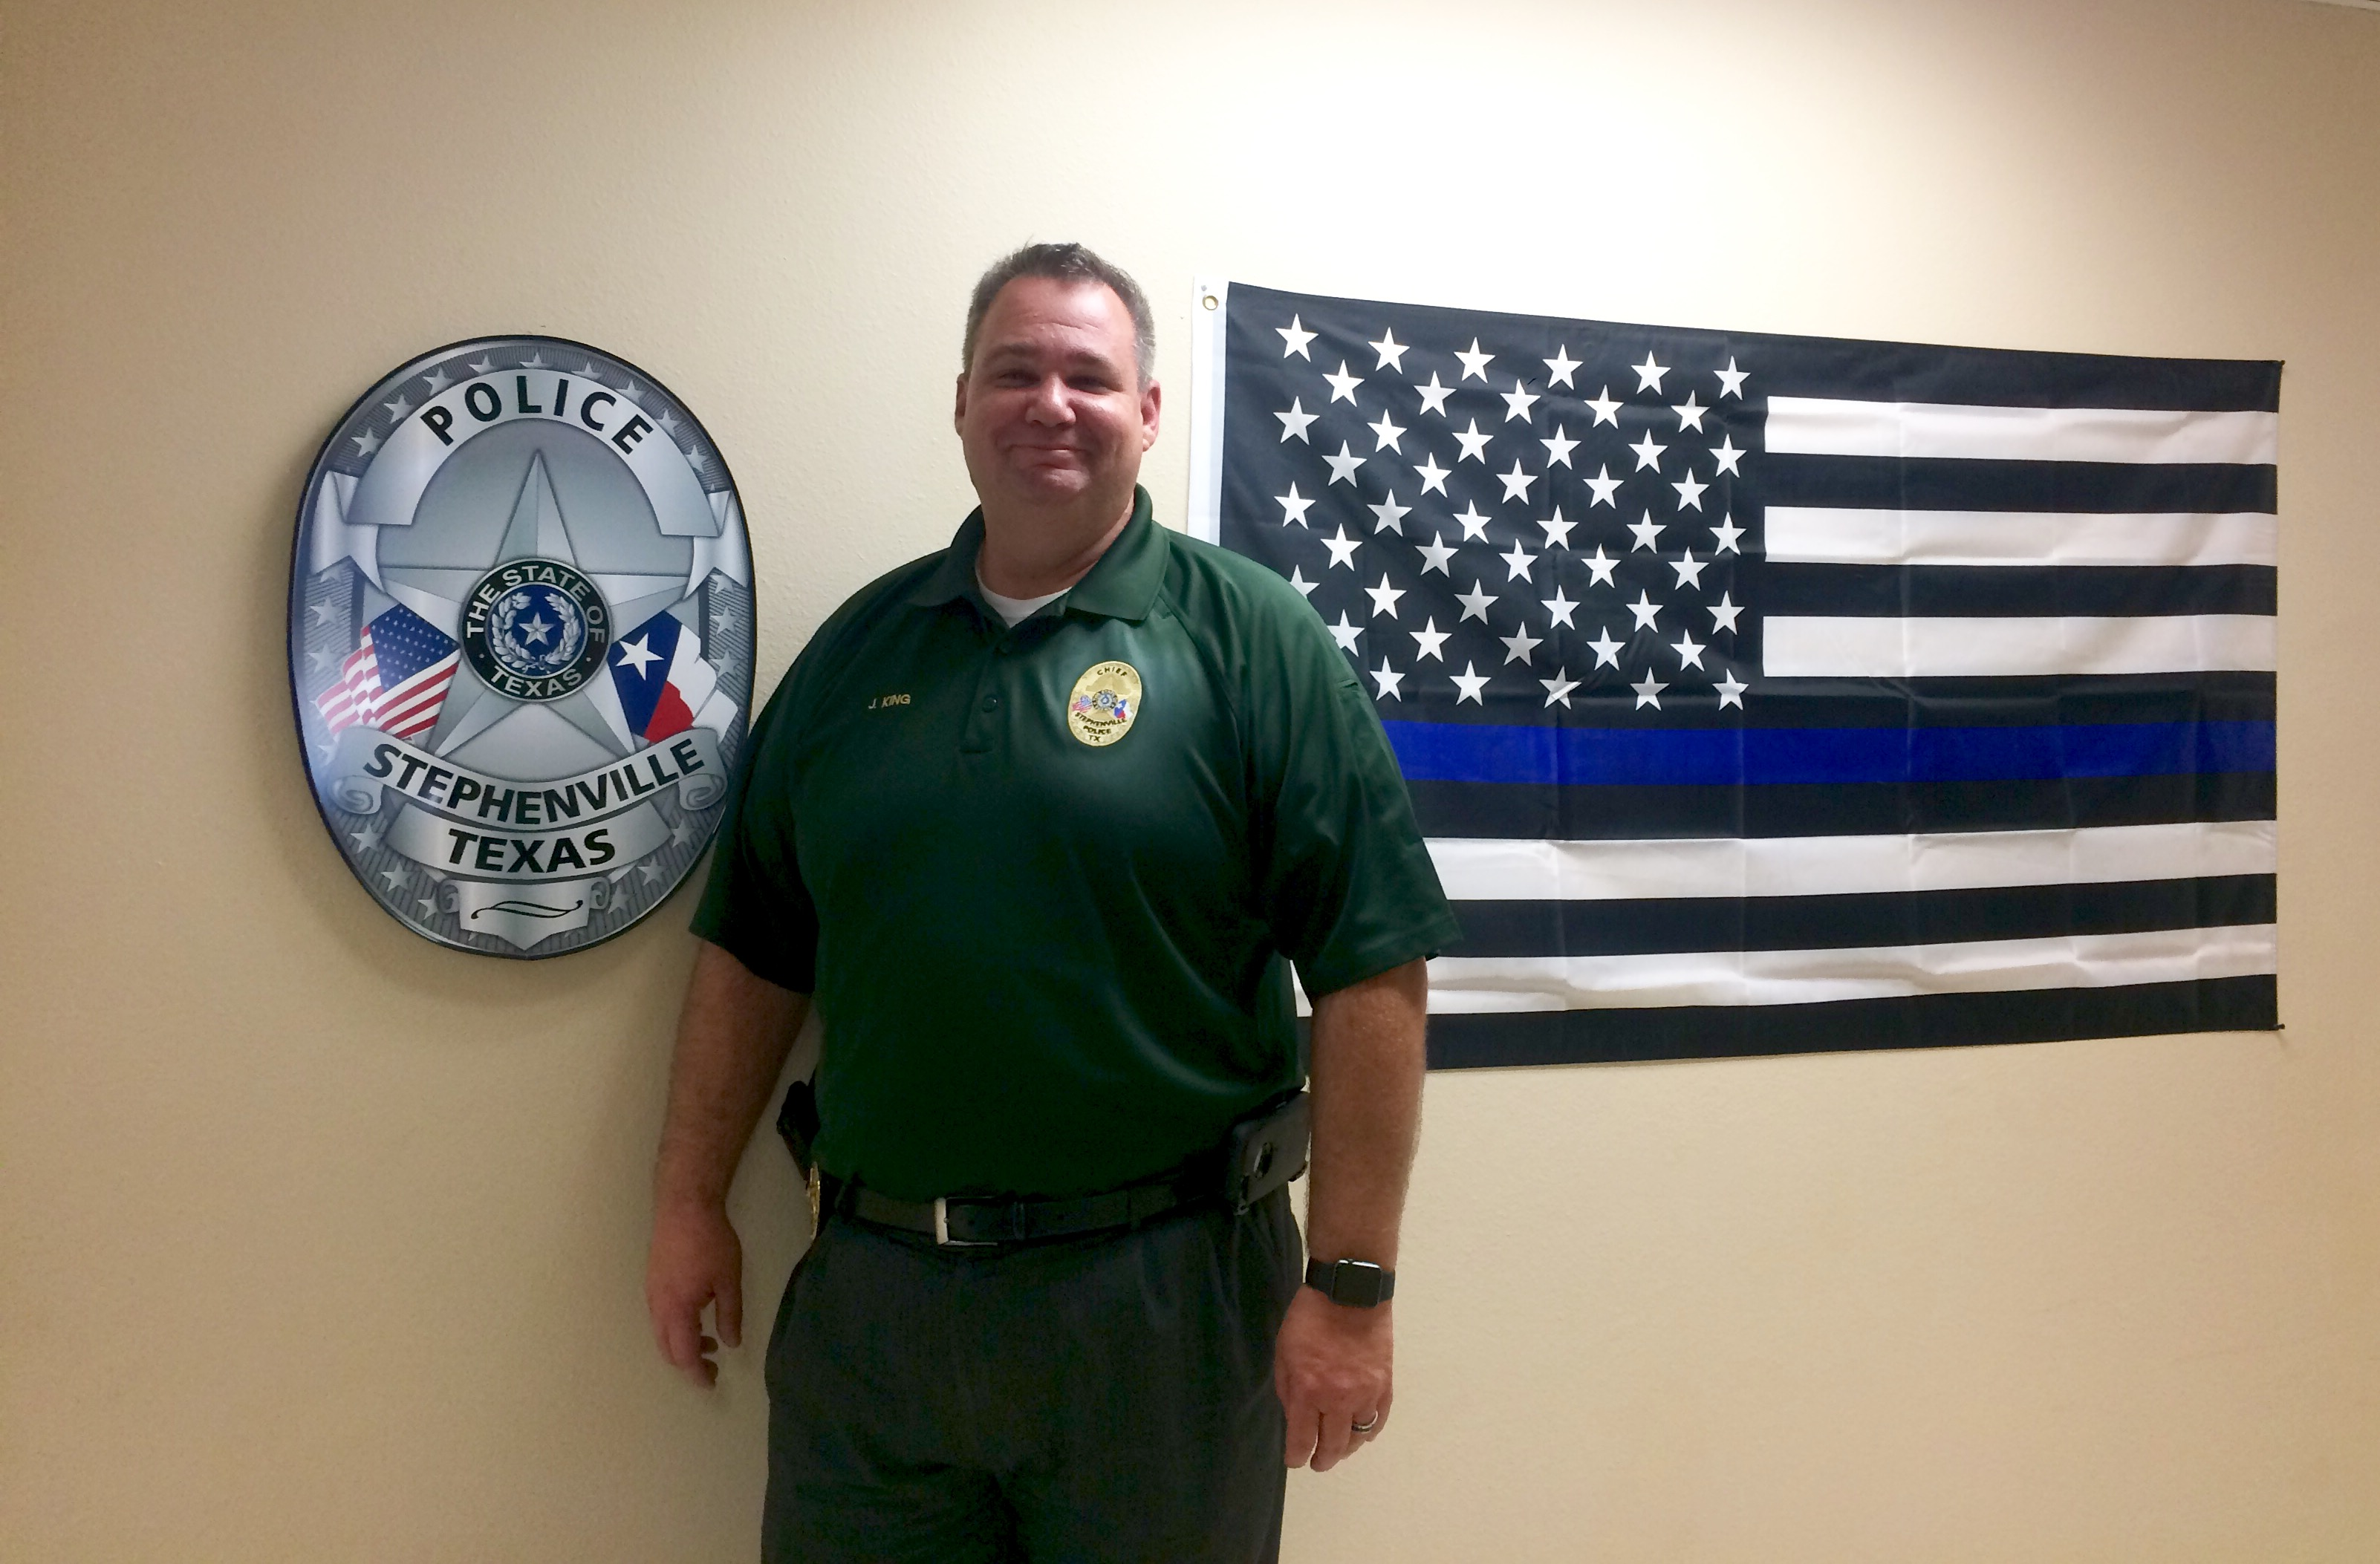 Chief of Police Jason King reaches 20 years of service with Stephenville Police Department